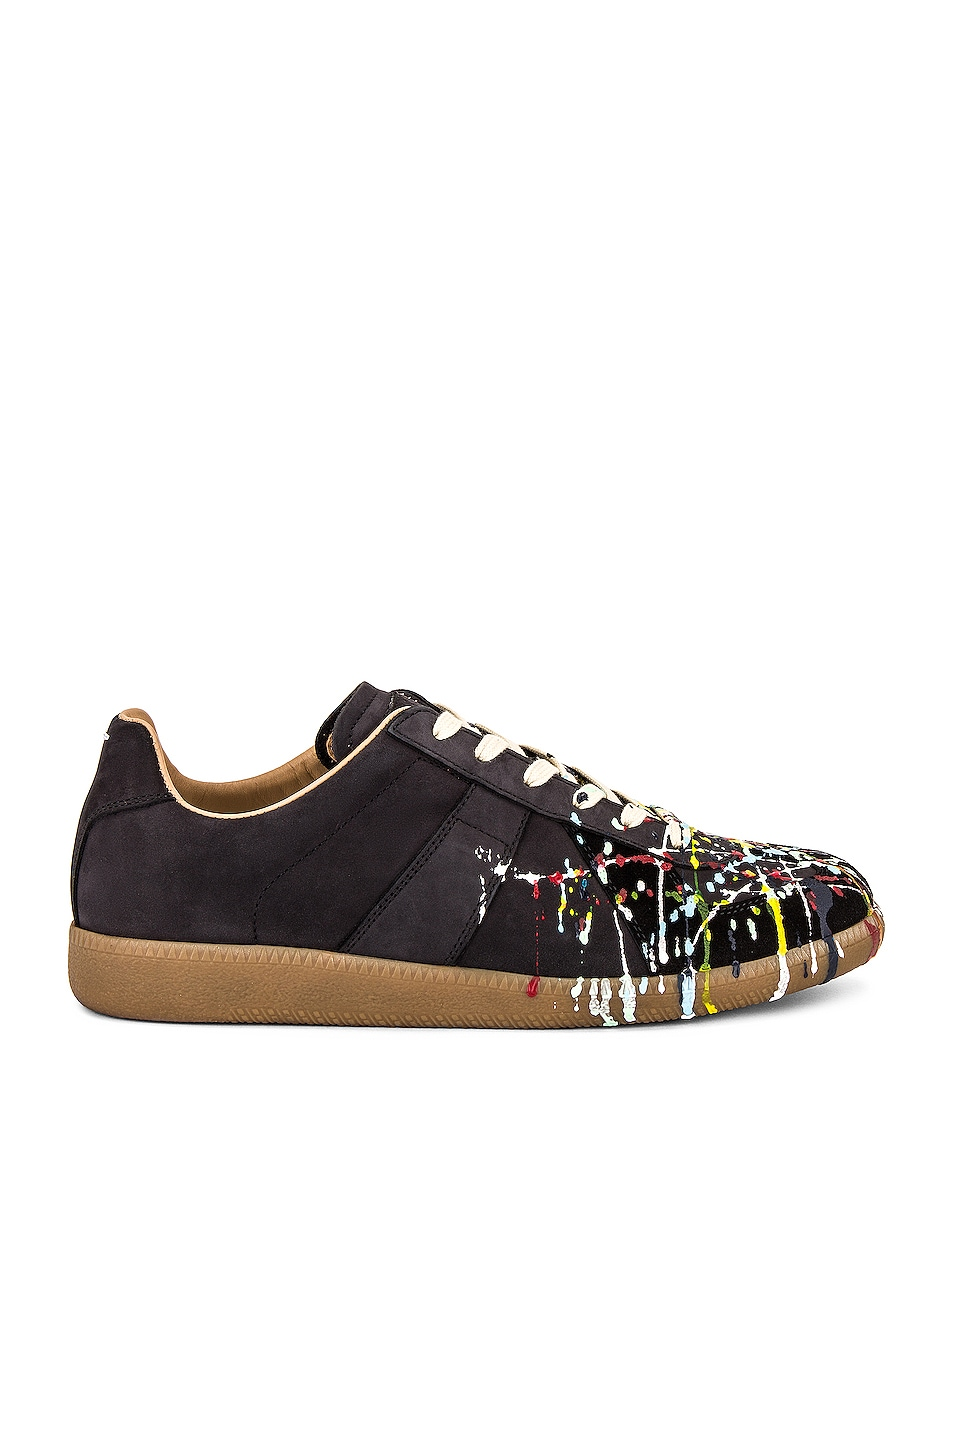 Image 1 of Maison Margiela Replica Sneakers in Black & Paint